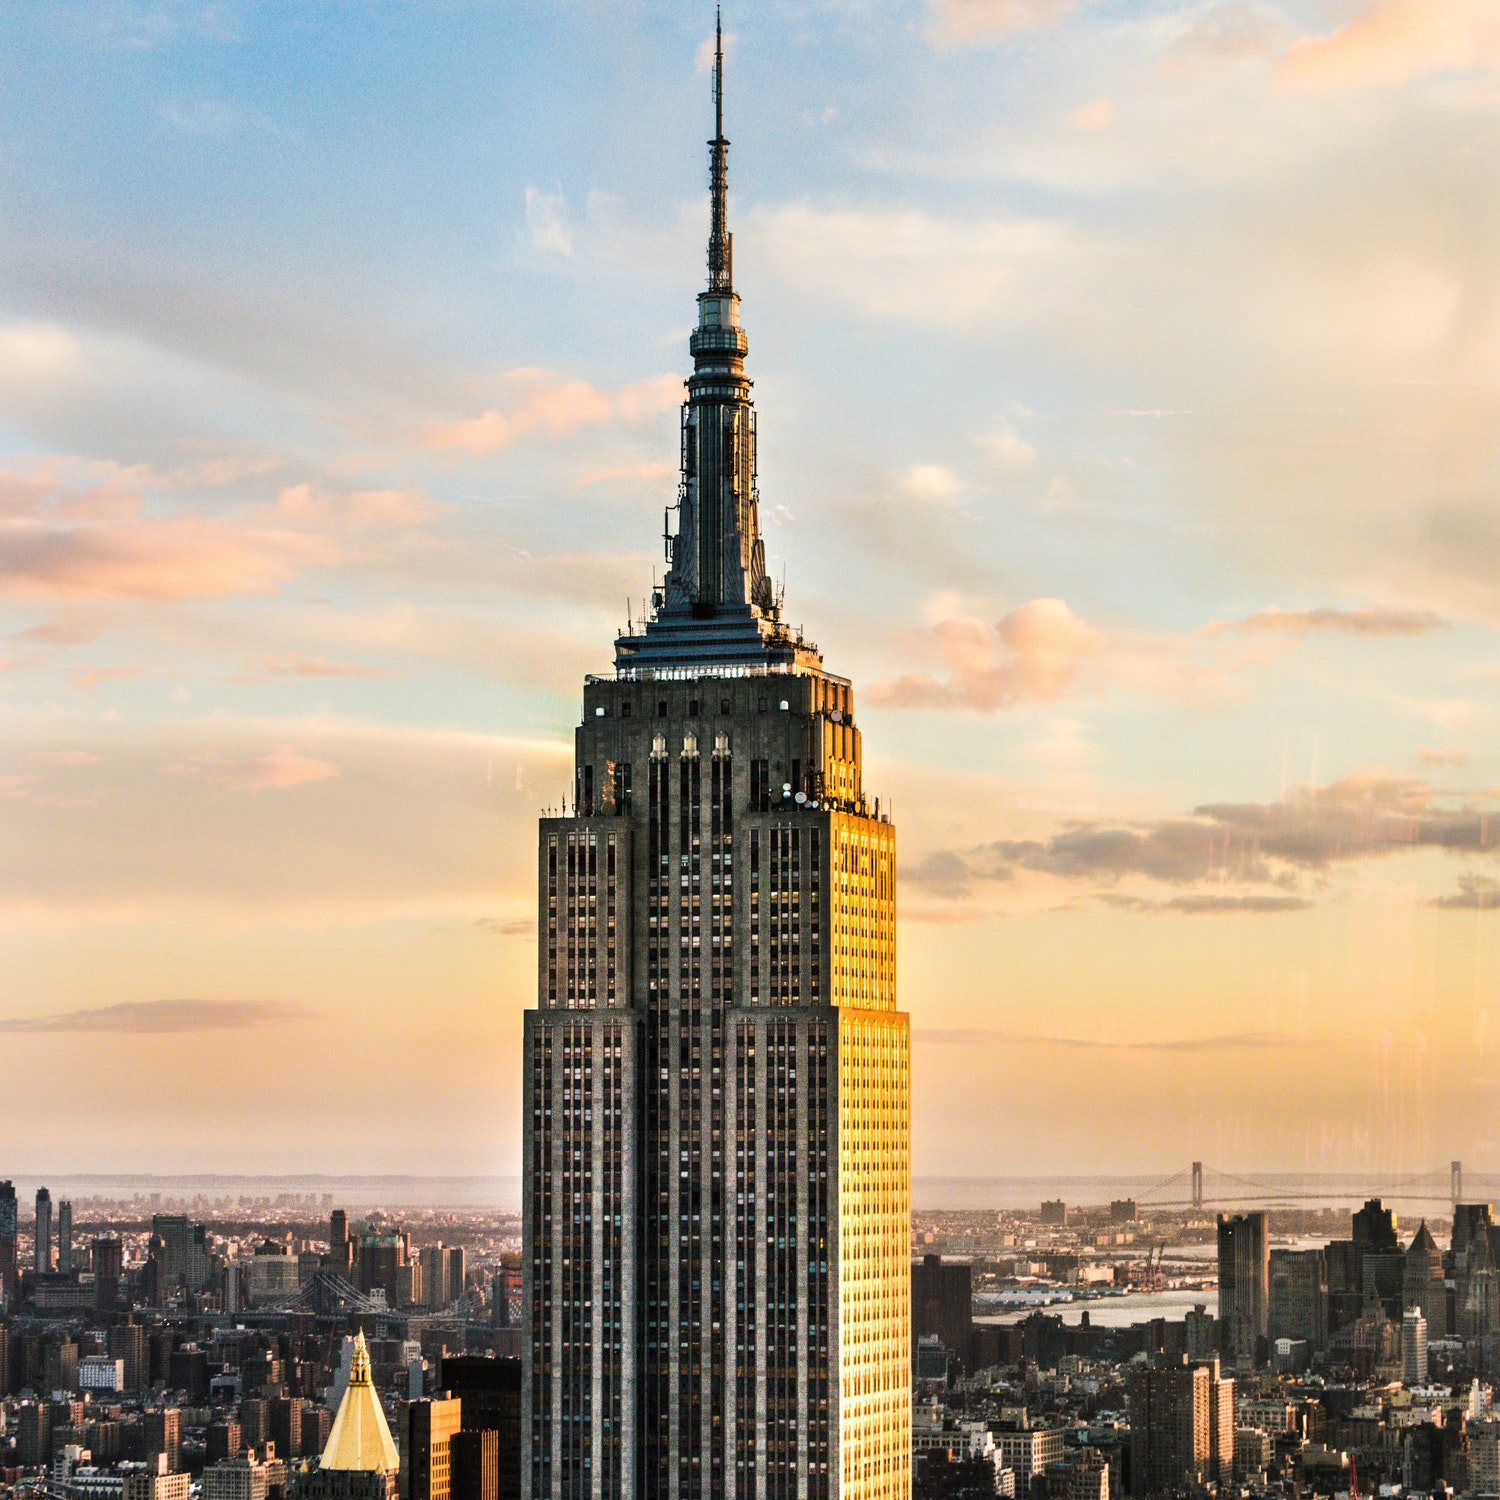 J1-New-York-empire-state-building